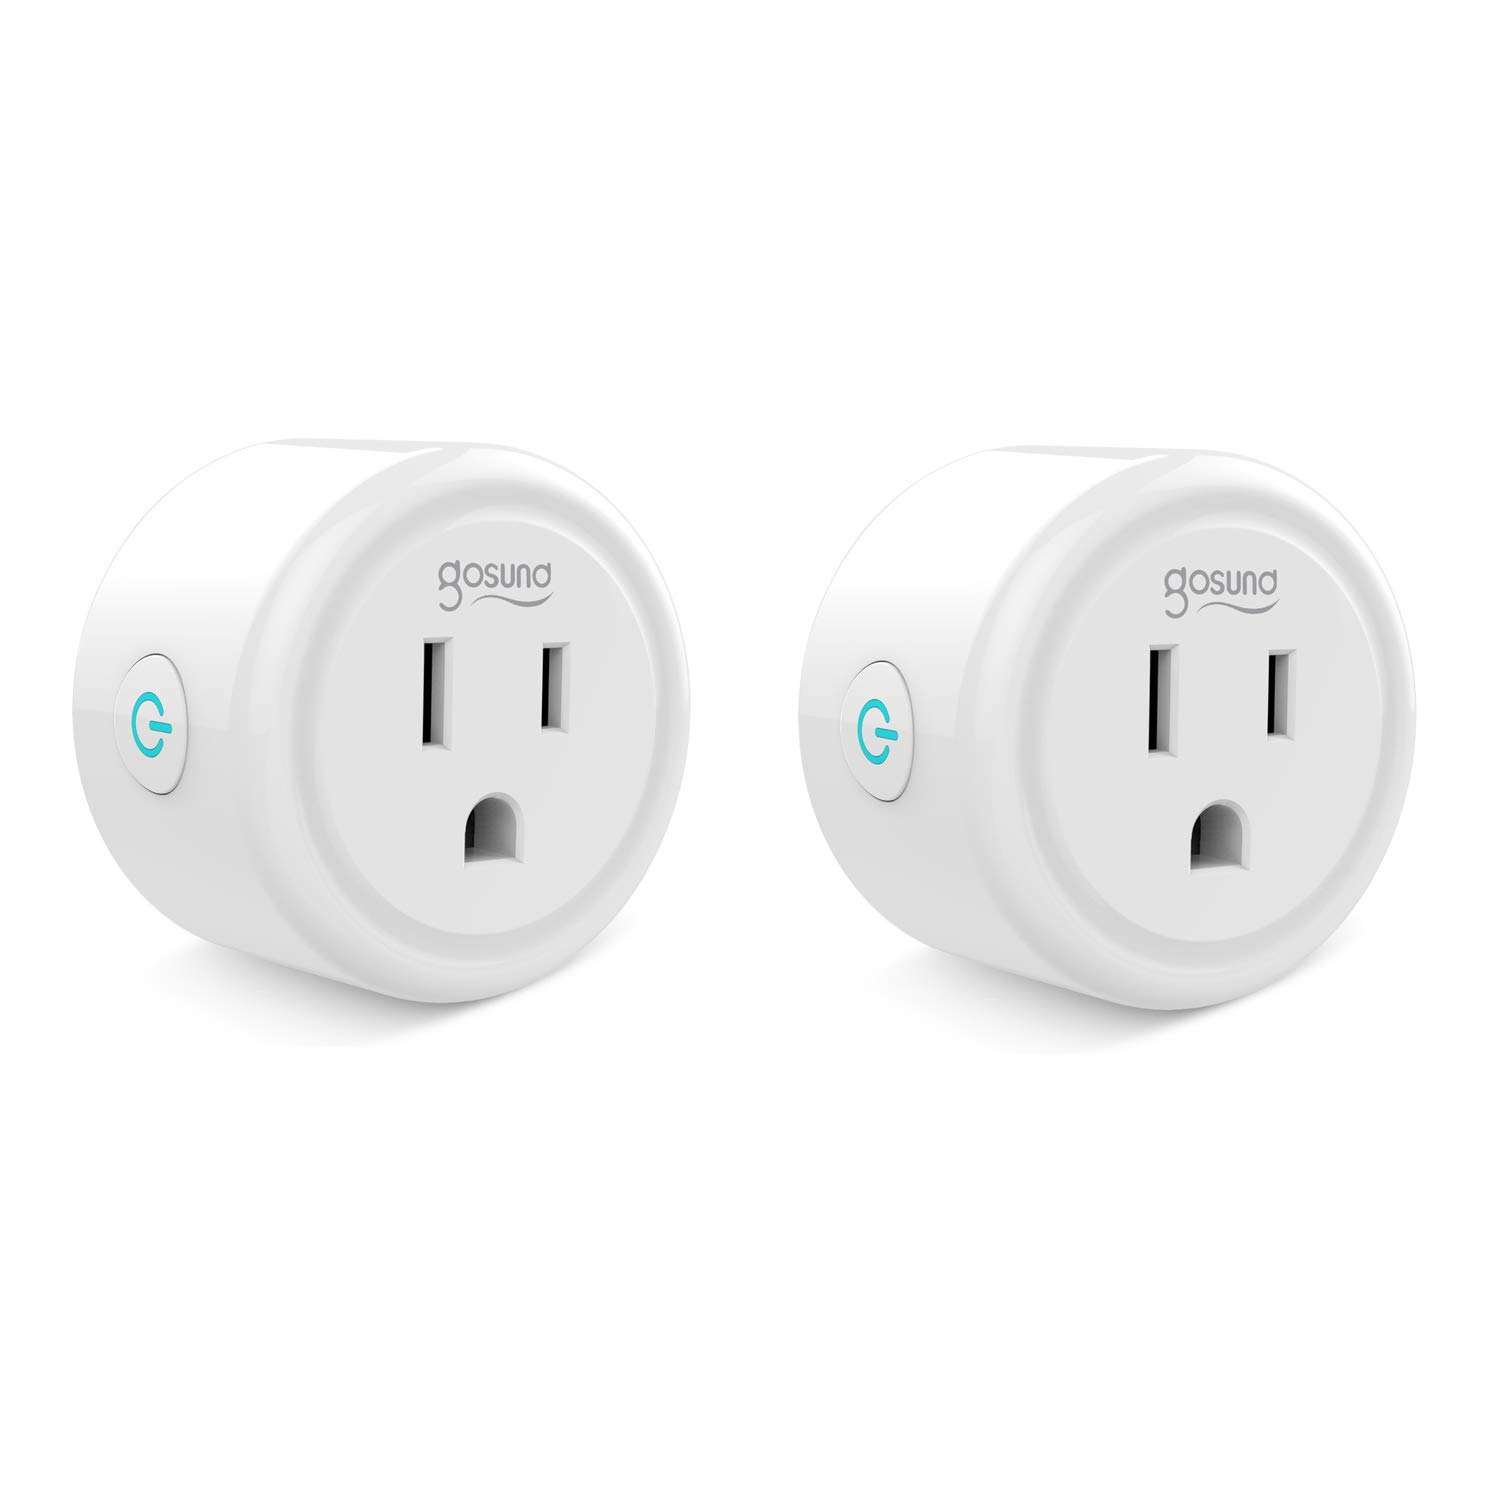 Mini Smart Plug Outlet Work With Amazon Alexa Google Home IFTTT, No Hub Required, ETL and FCC Listed Wifi enabled Remote Control Smart Socket by Gosund (2 Pack)